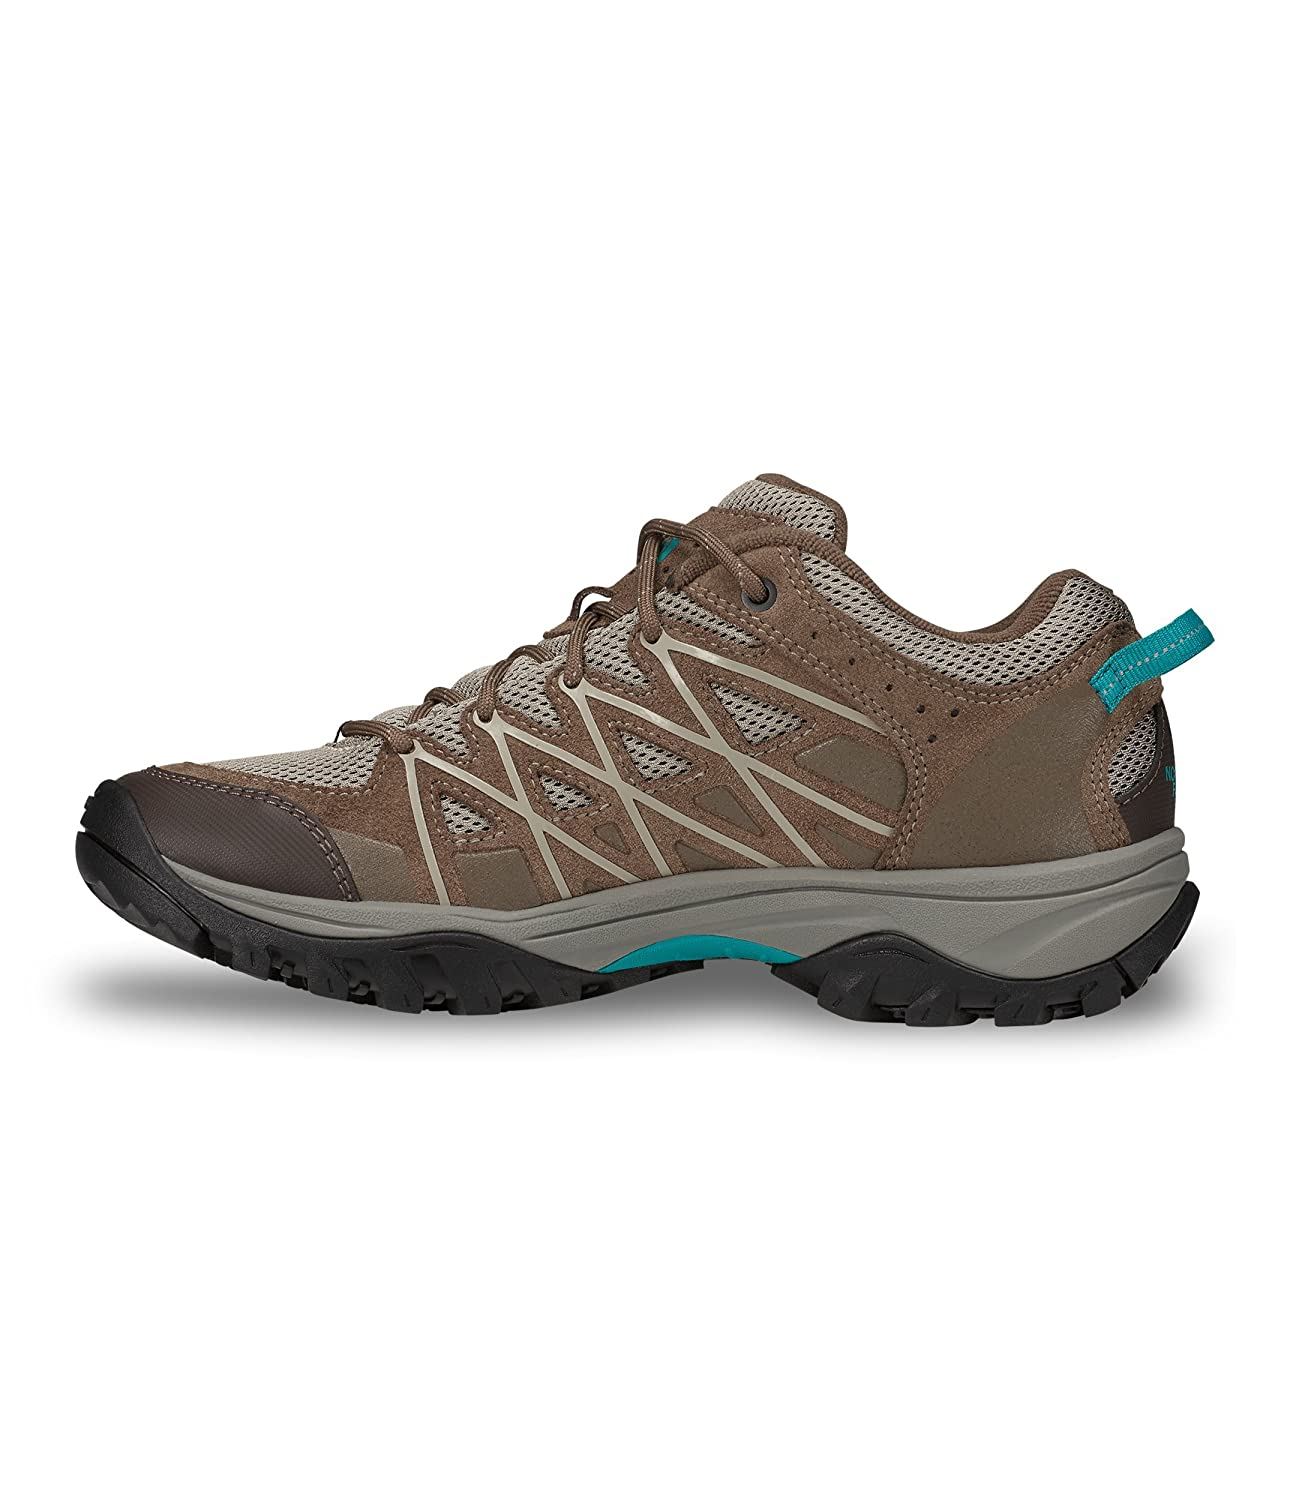 The North Face Womens Storm III B074KQKQWD 6|Cub Brown & Crockery Beige